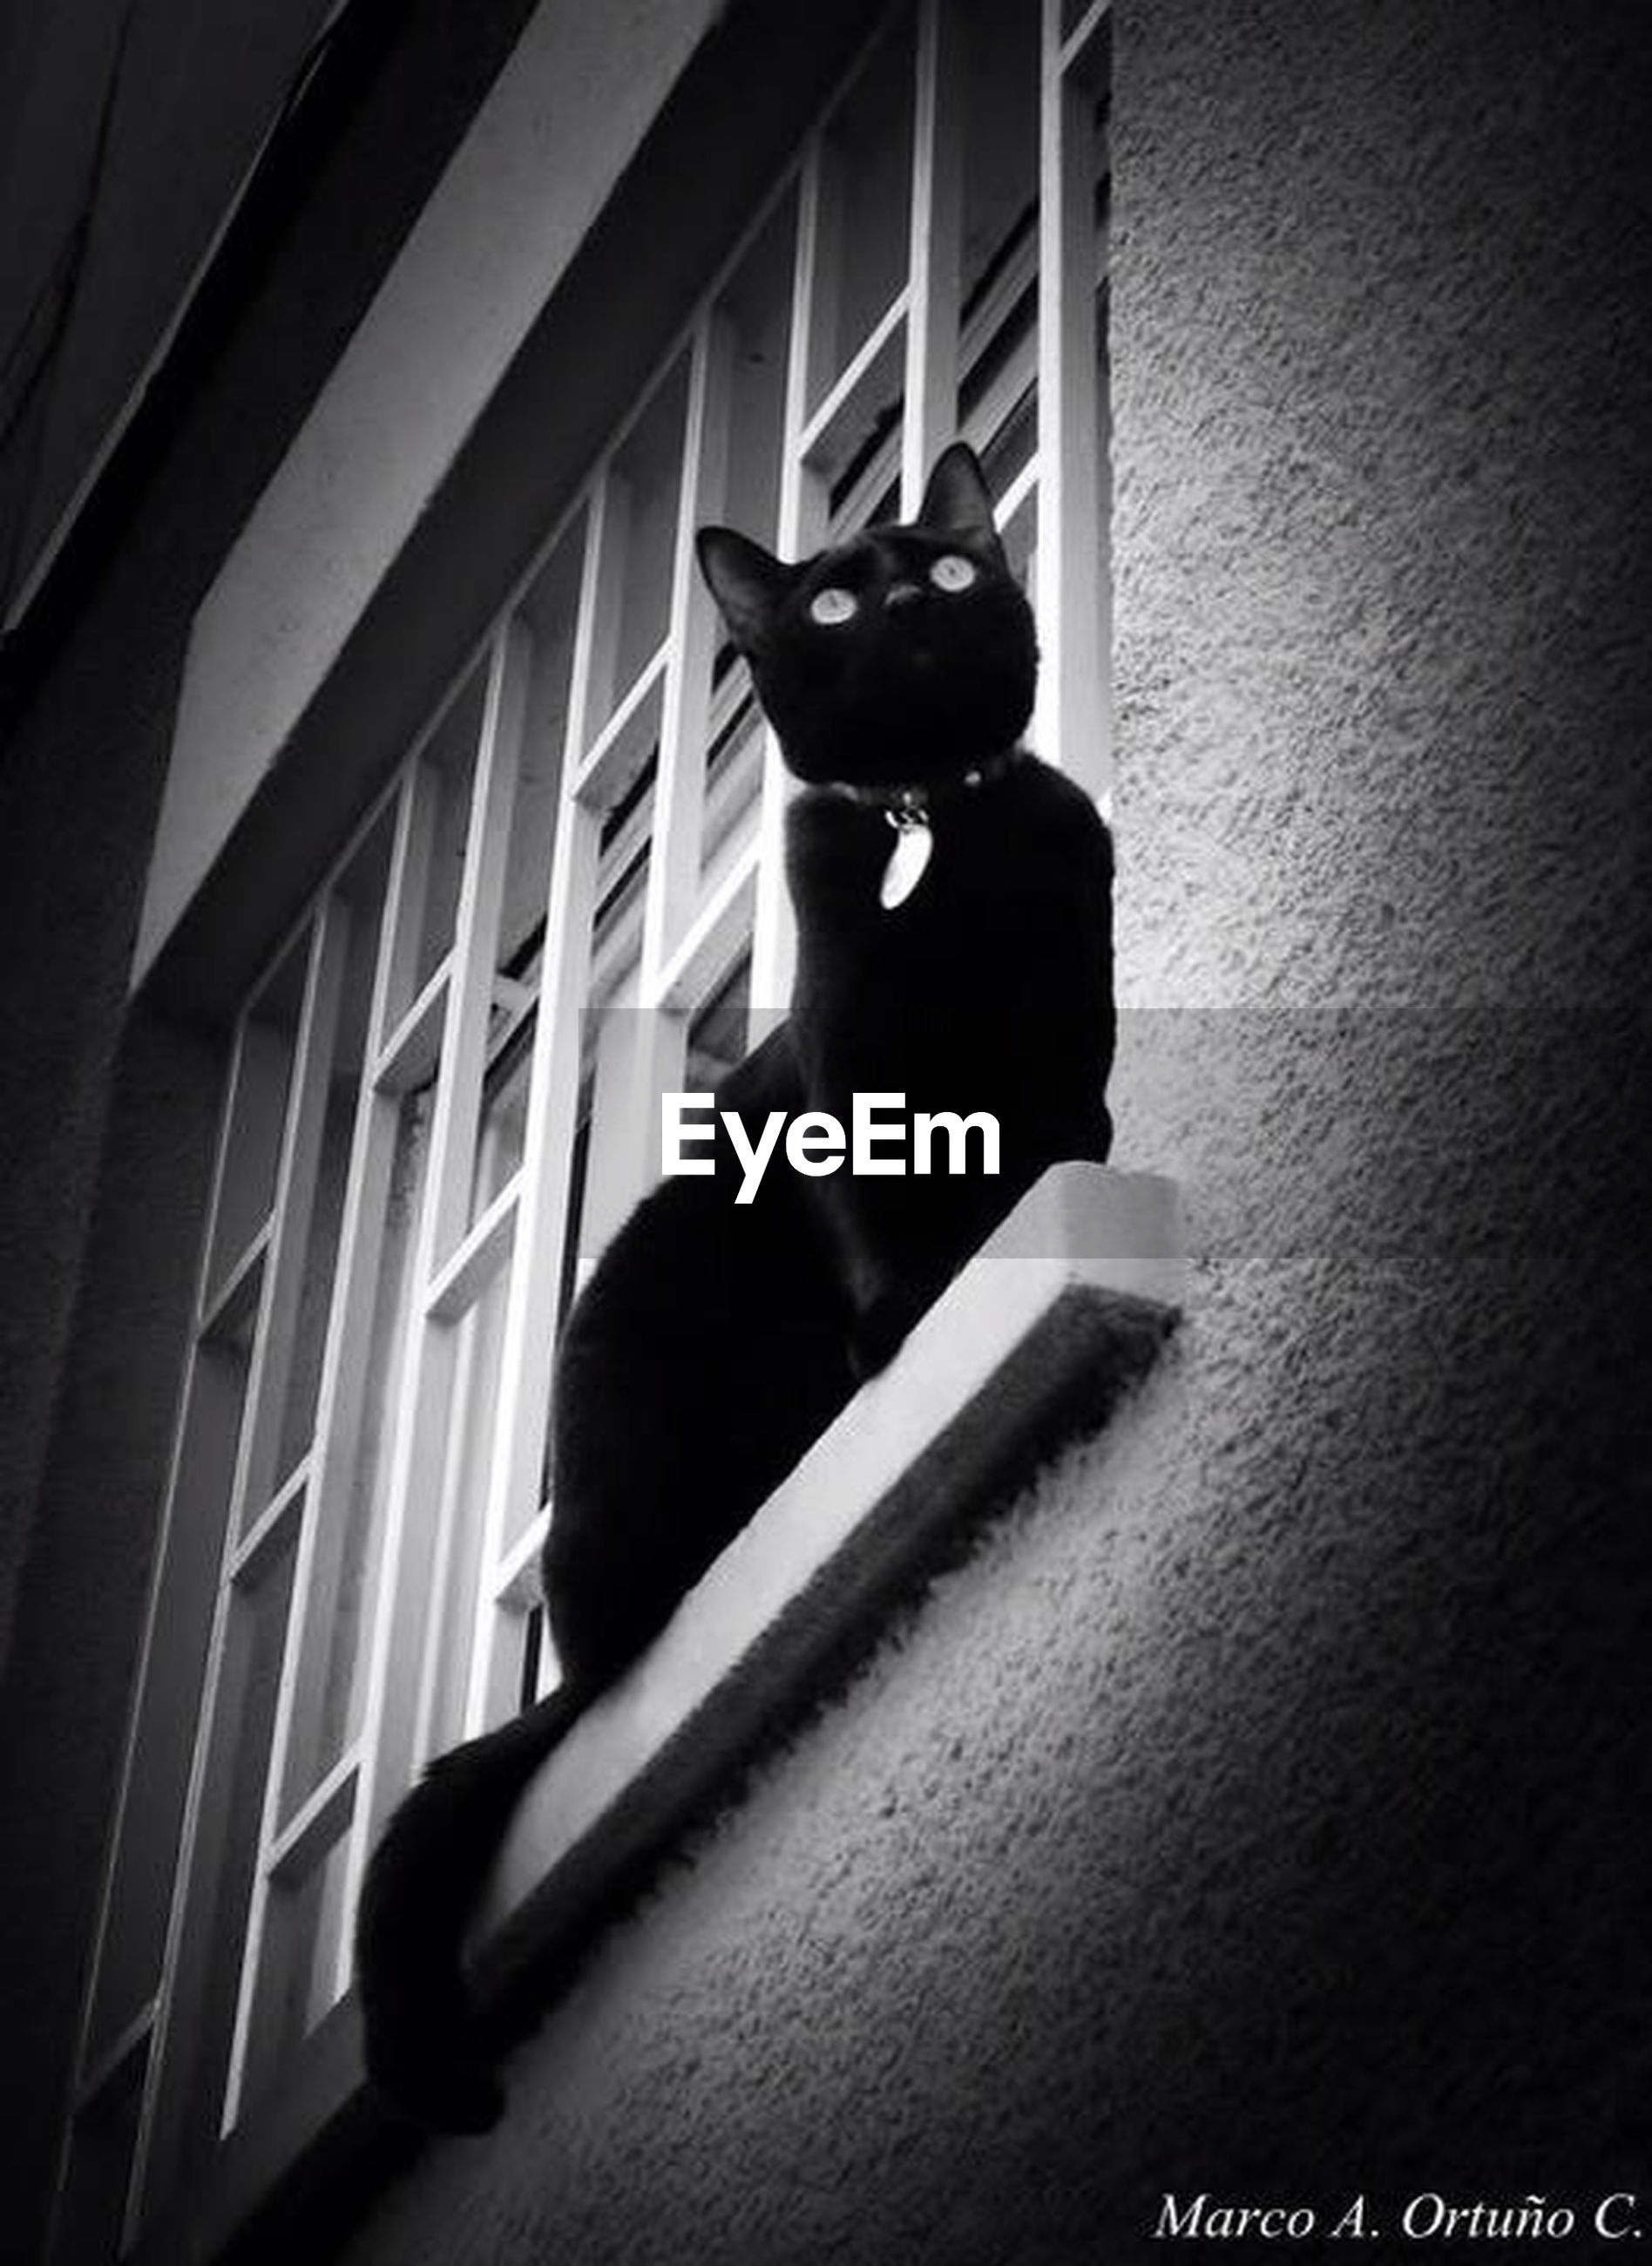 window, architecture, one animal, built structure, pets, building exterior, animal themes, domestic animals, black color, full length, low angle view, domestic cat, building, cat, sitting, indoors, house, glass - material, day, mammal